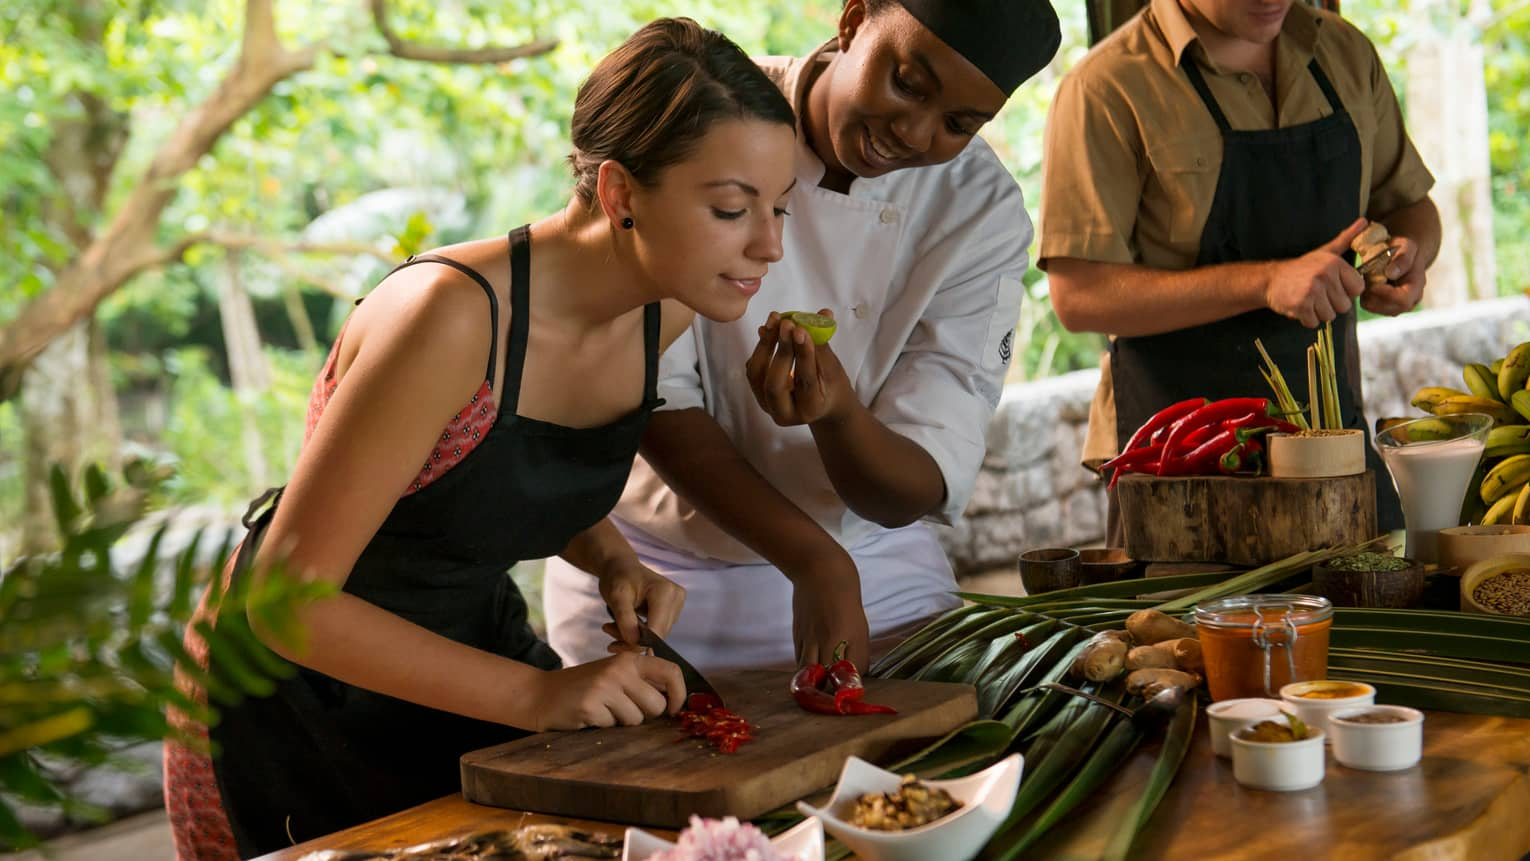 Chef holds fresh lime for woman in black apron to smell as she chops red pepper on wood board